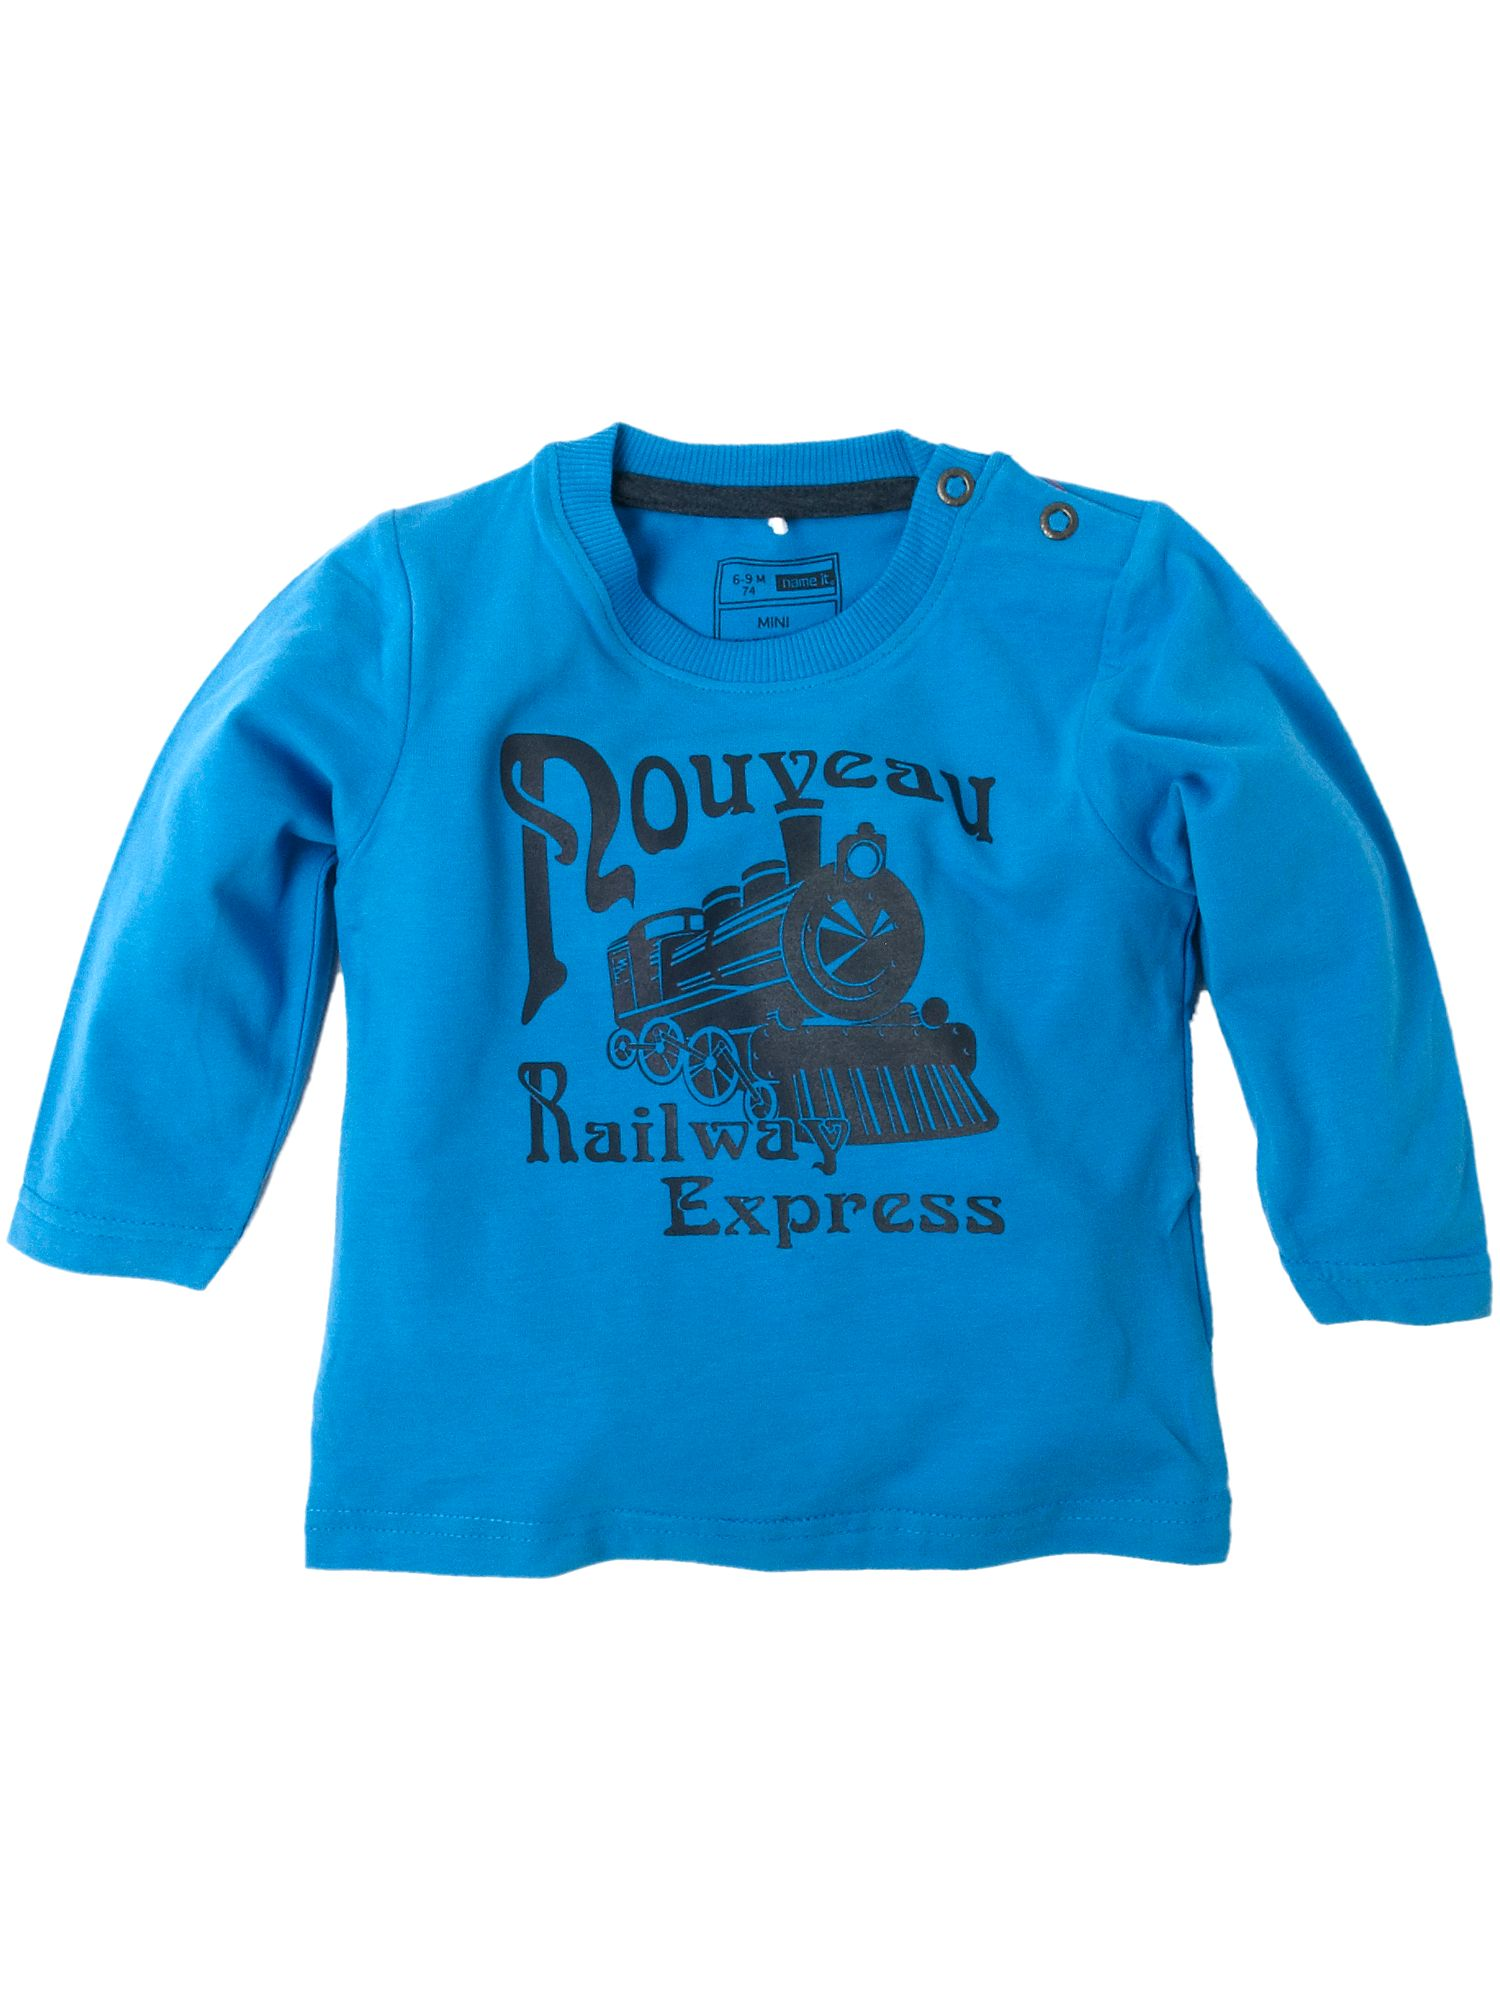 Name It Long-sleeved railway express printed T-shirt Sky product image